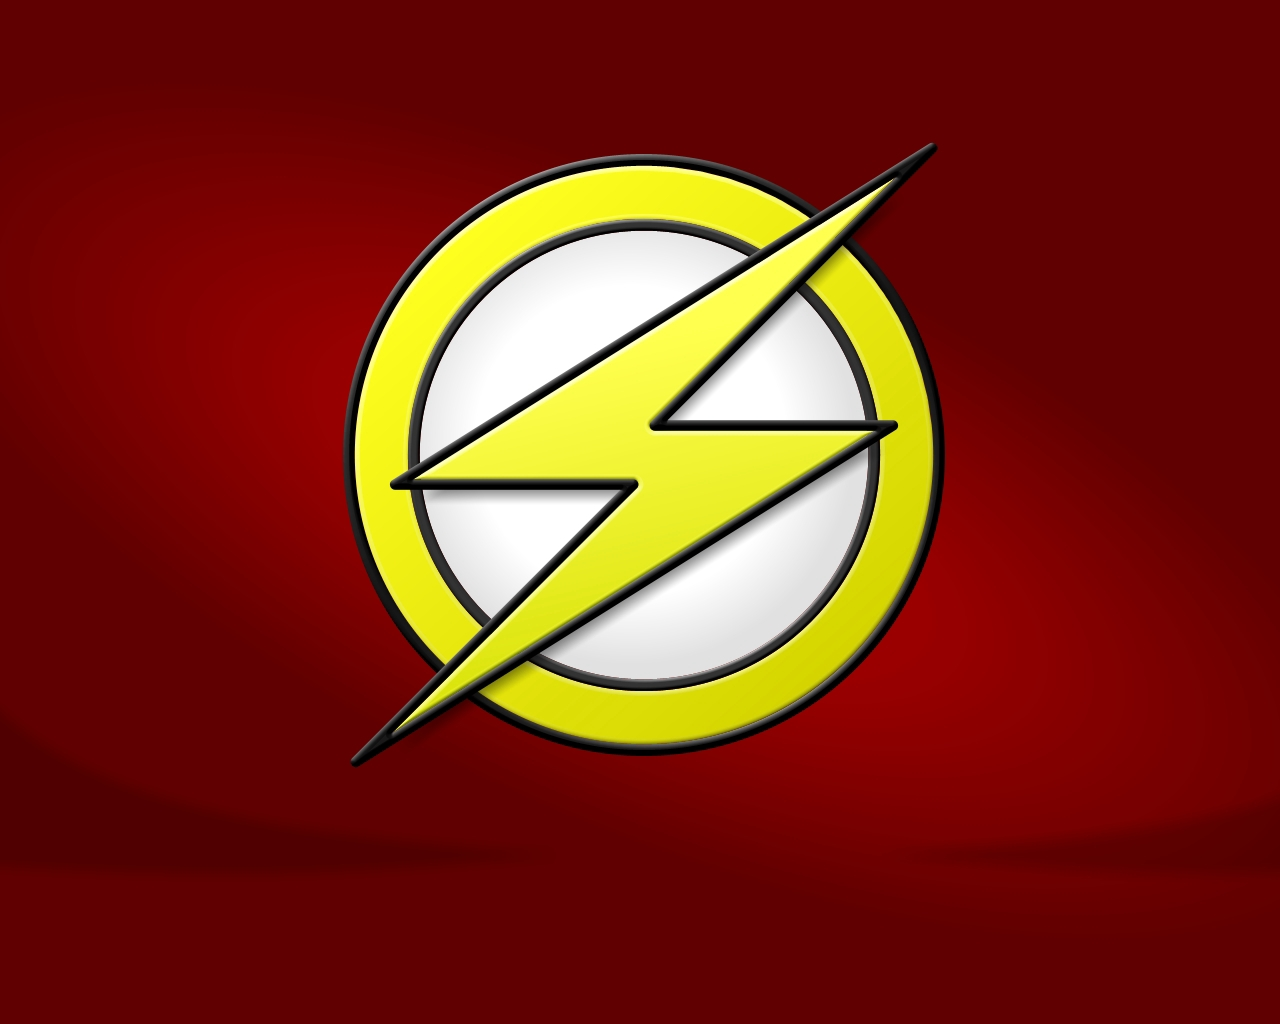 flash superhero logo - photo #9